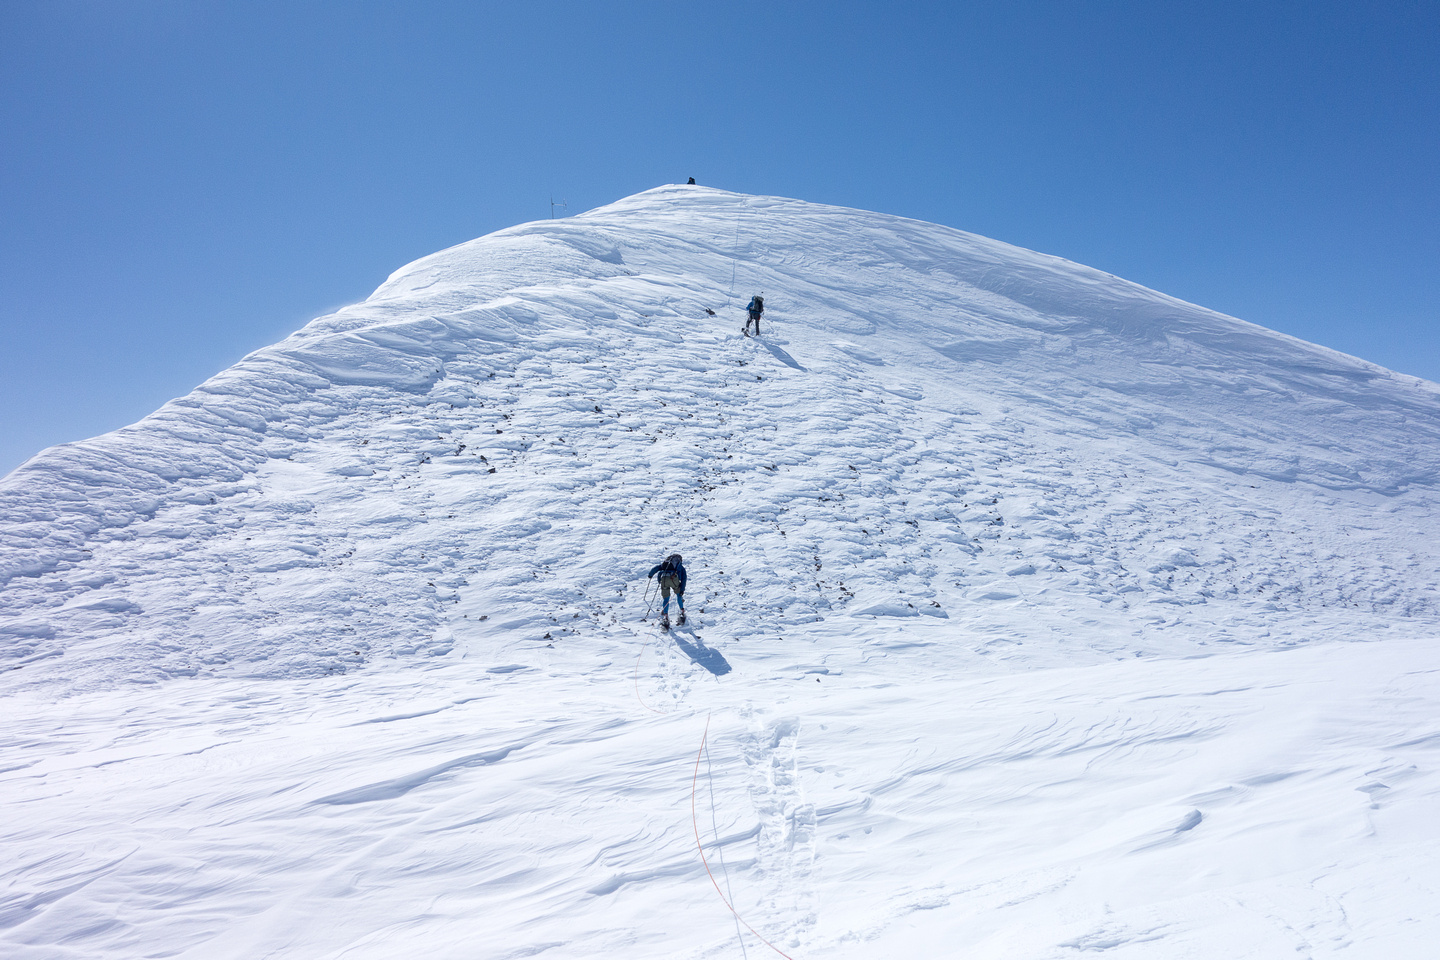 The summit is visible! One last scree / snow slope.